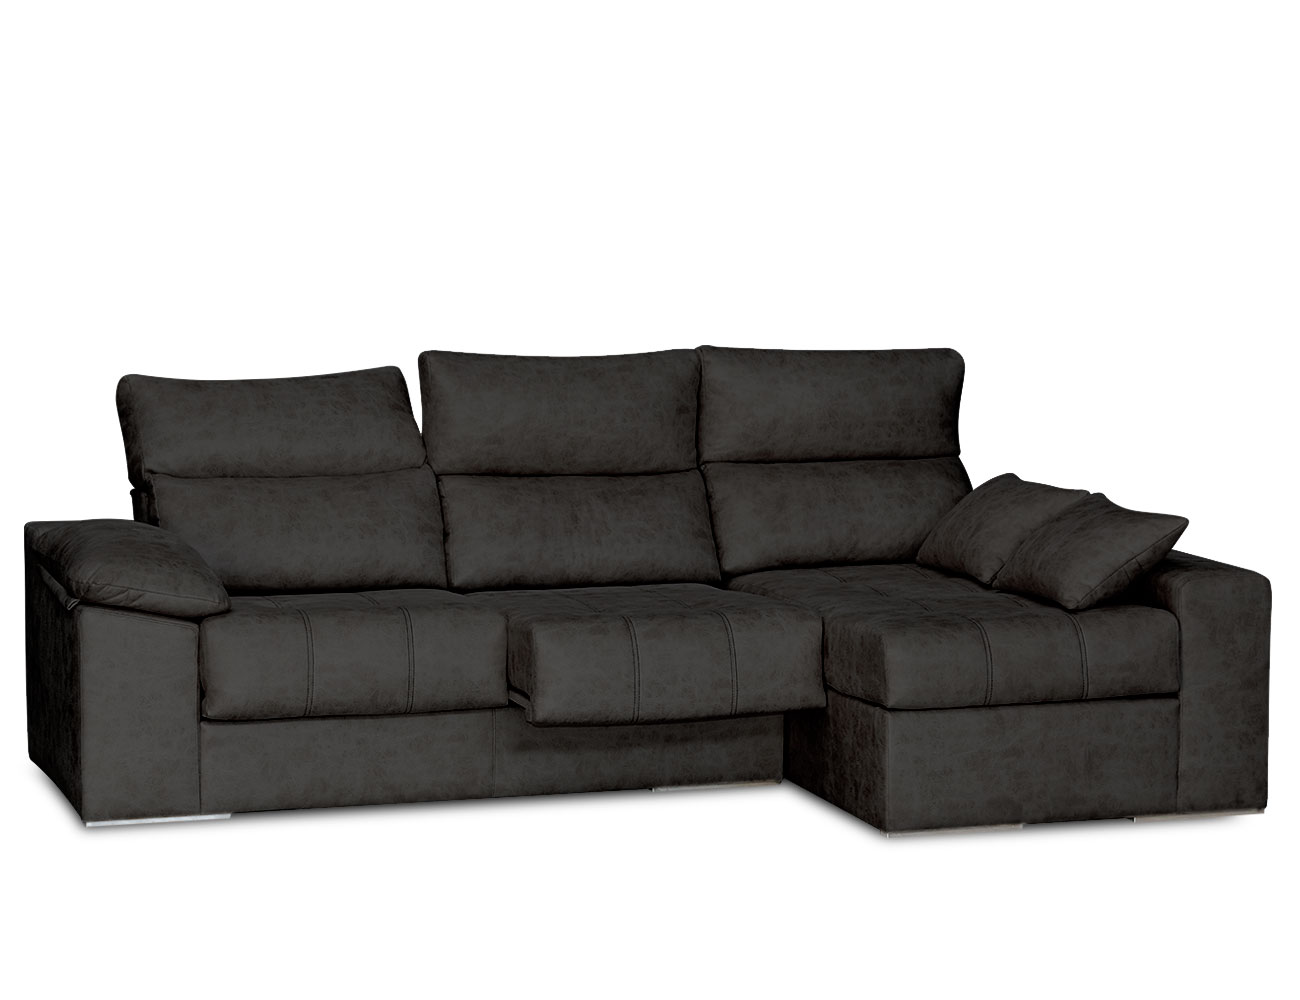 Sofa chaiselongue surf negro 11